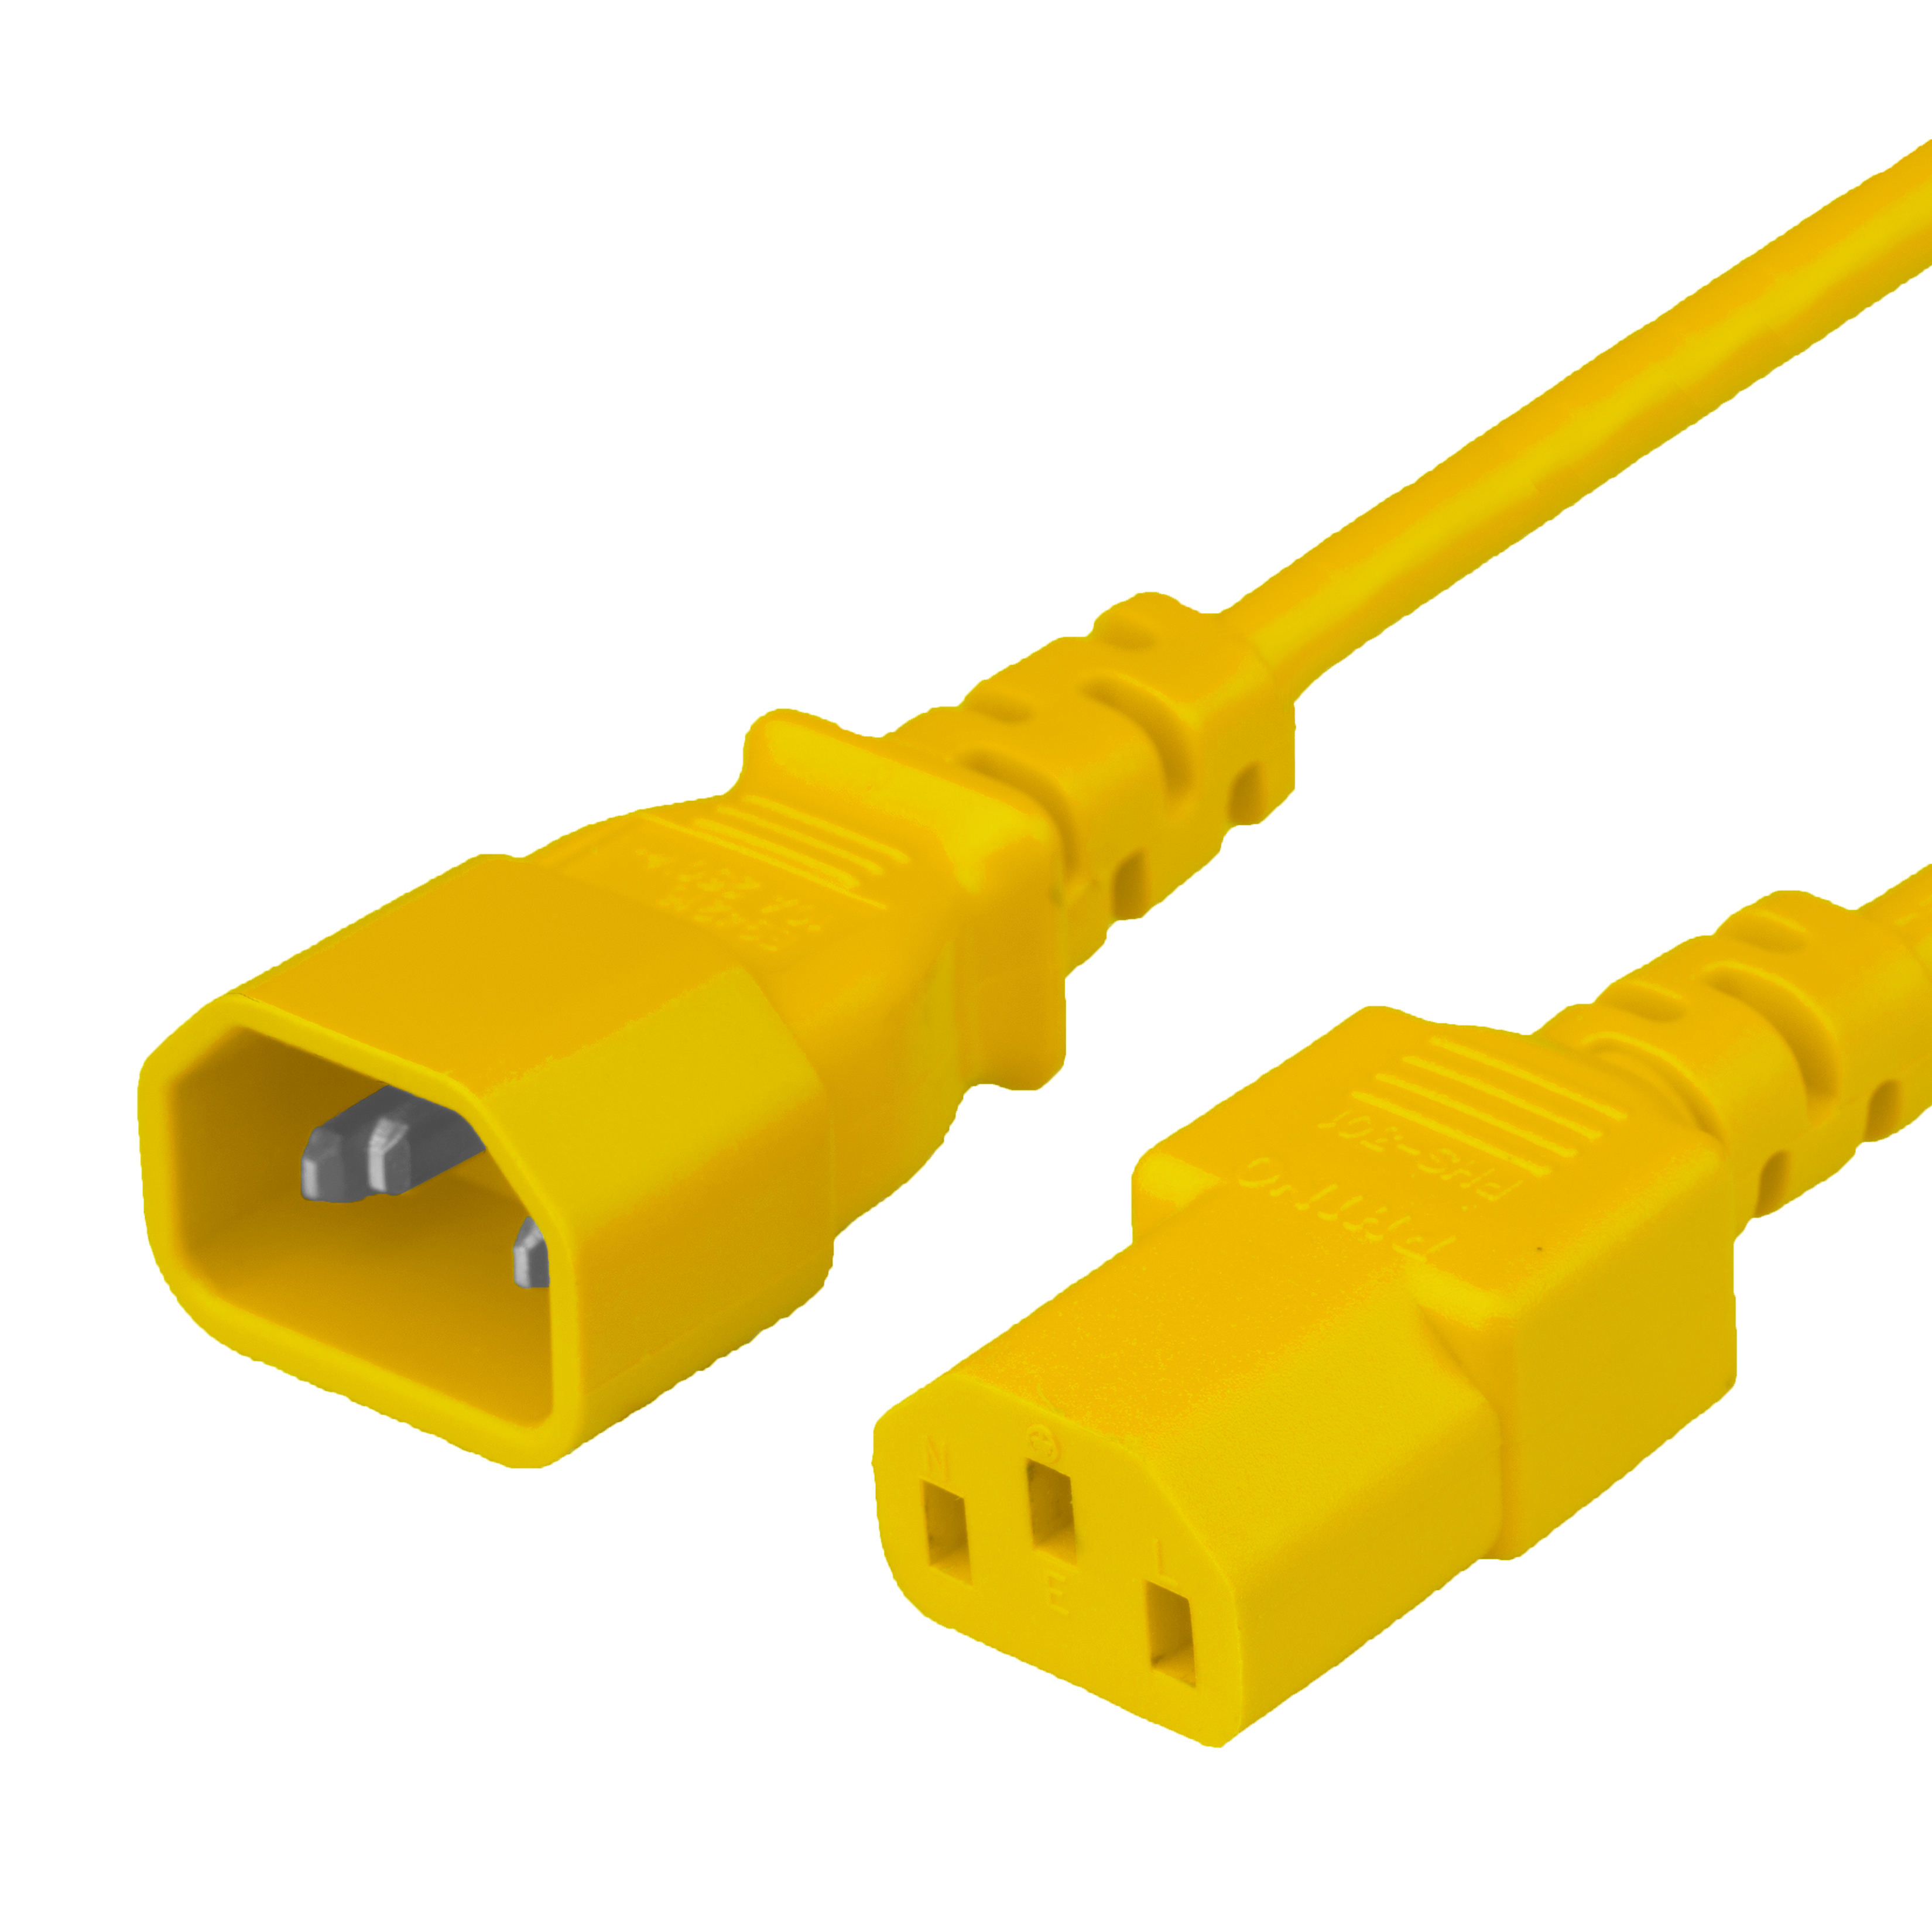 1FT C13 C14 10A 250V 18/3 SJT YELLOW Power Cord